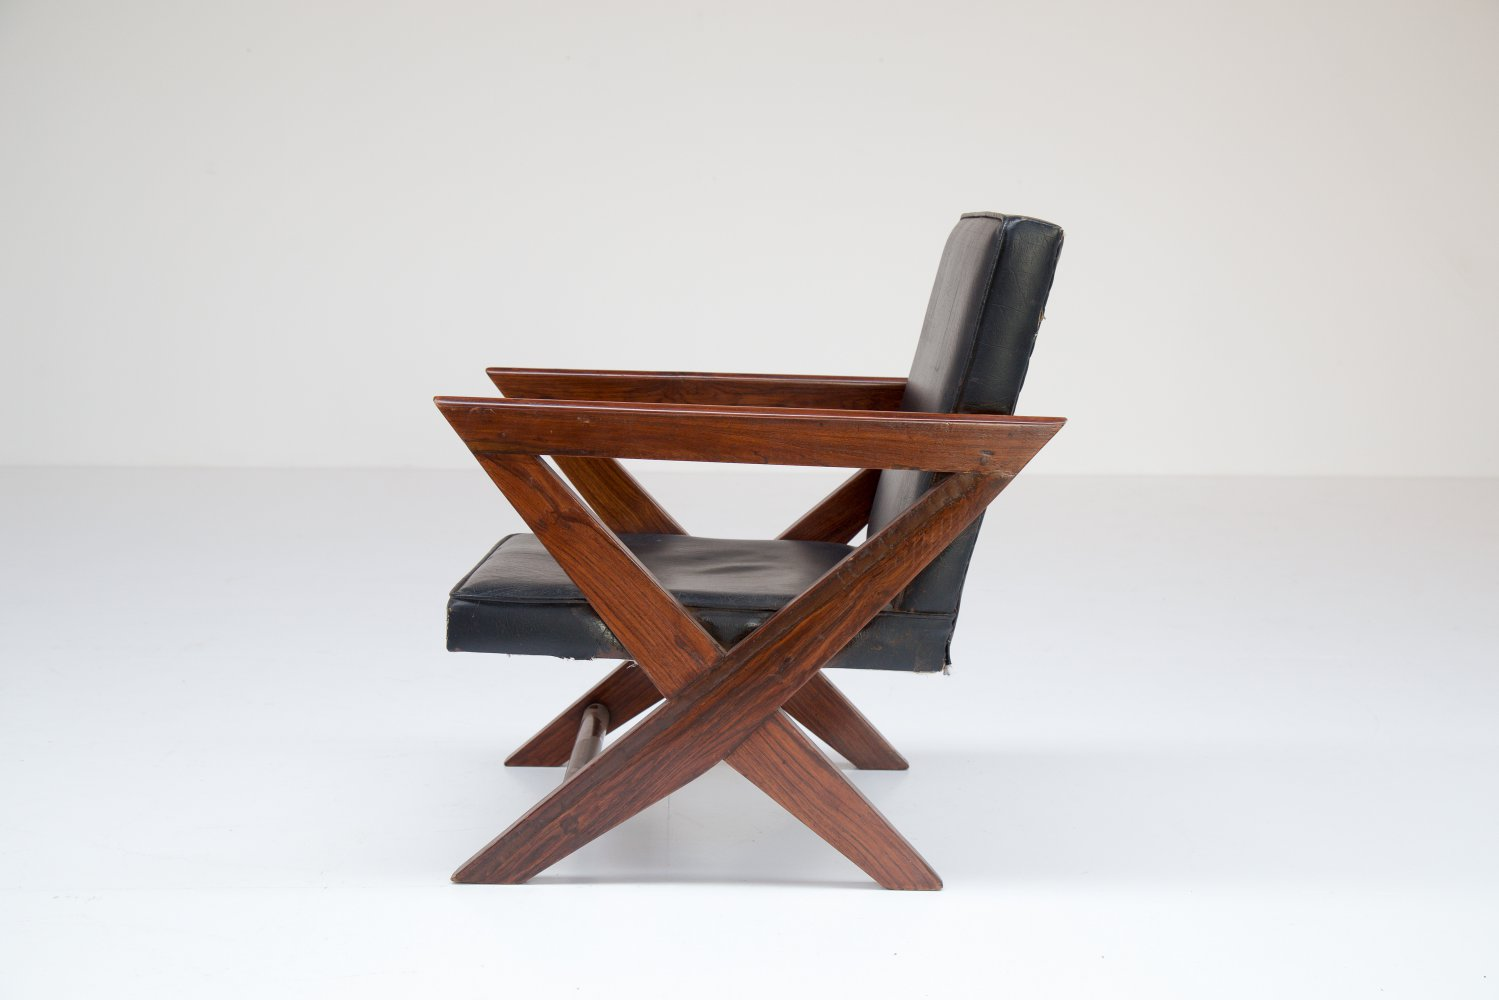 Pierre Jeanneret Lounge chair from M.L.A Flats building in Chandigarh